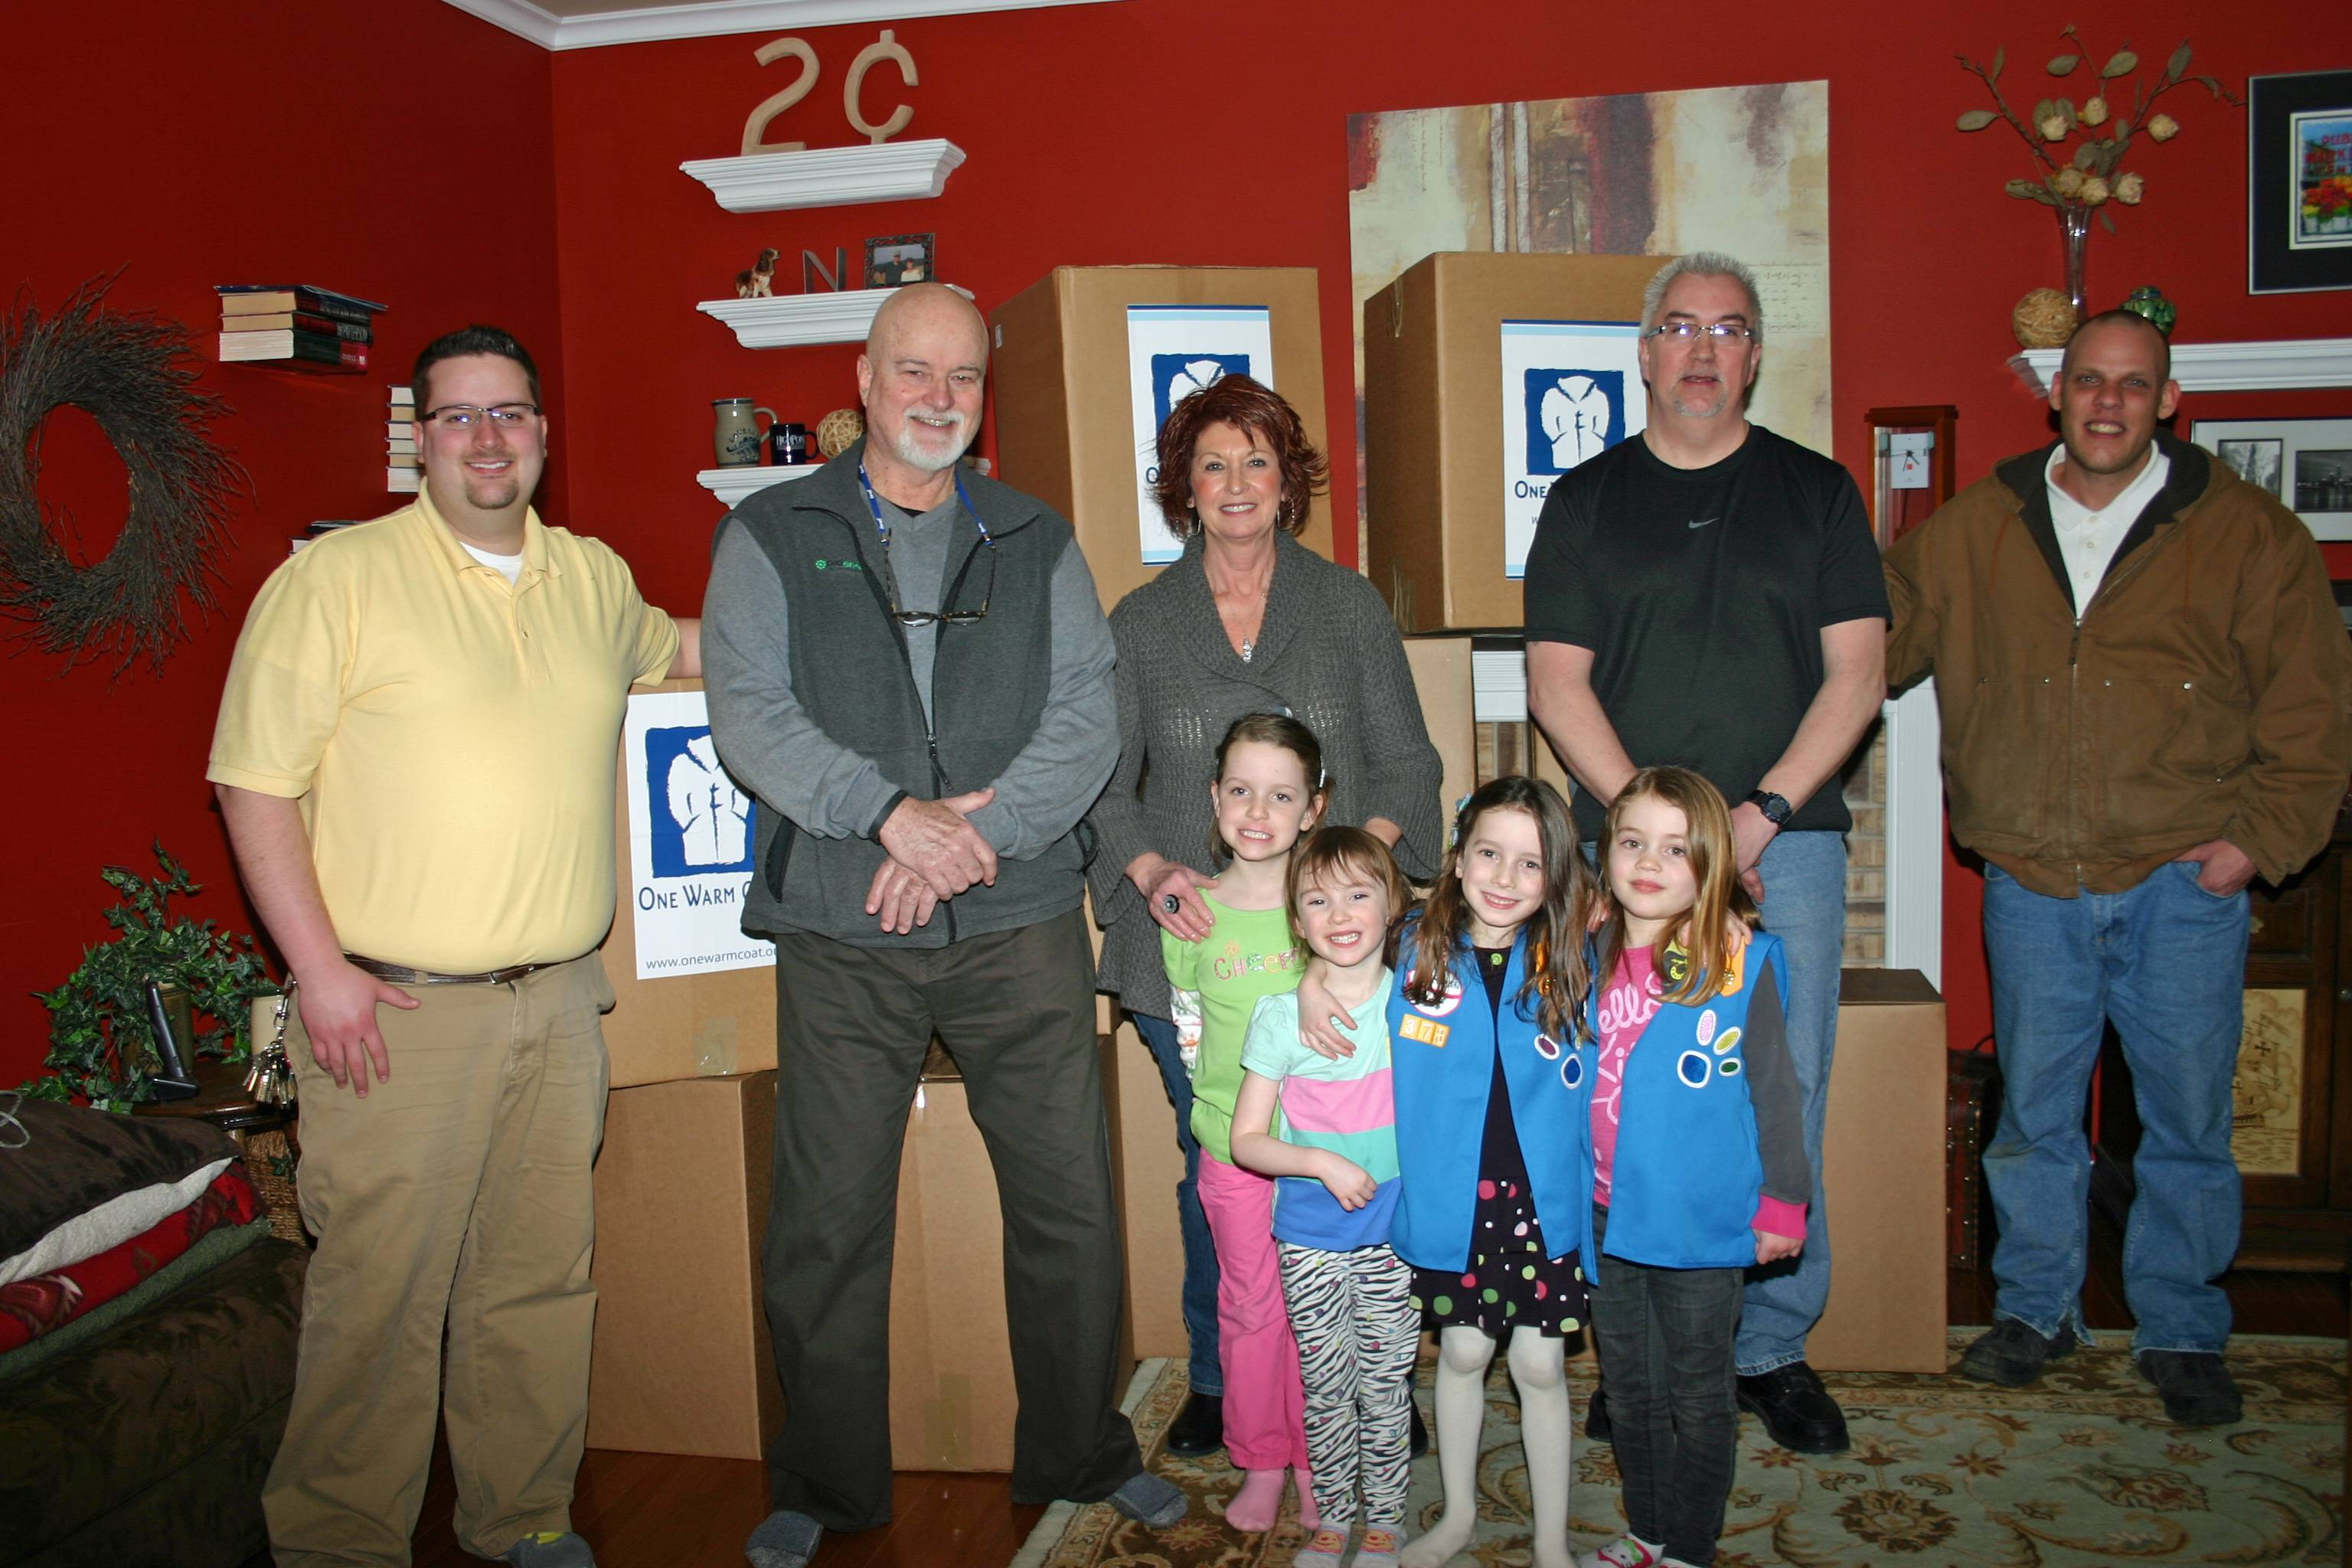 With over 500 coats donated to Wayside Cross Ministries, Pro Energy Consultants smashed their coat donation record this year. Pictured with a few of the coat boxes, from left to right are Kale Little, Hope Outreach Coordinator of Wayside Cross Ministries; Jerry Needham, Pro Energy Consultants; Billie Needham, Pro Energy Consultants; Mike Clancy and Gabriel Murray, both residents within the Master�s Touch program of Wayside Cross Ministries. In the front, left to right are Emma Spinney, Bella Bruno, Marianna Bruno and Jade McCrink, members of Daisy Scout Troop 373 and Daisy Scout Troop 1154 out of Grace McWayne Elementary School, Batavia.